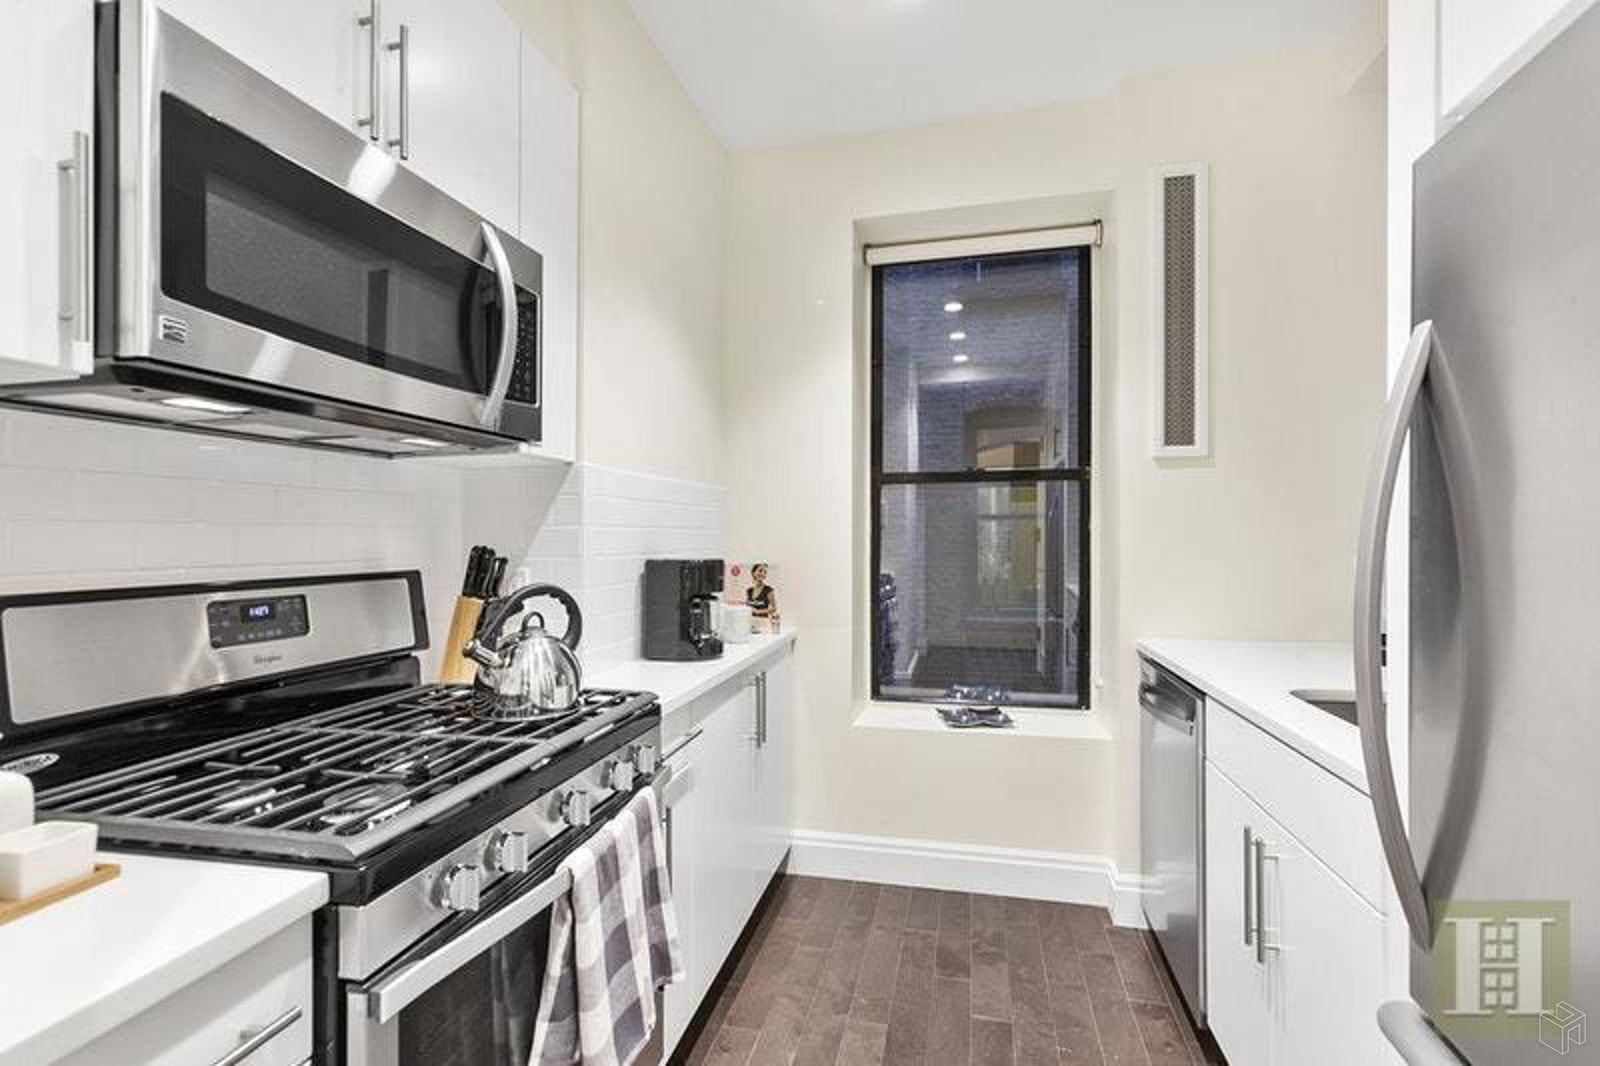 98 Morningside Avenue 26, Upper Manhattan, NYC, 10027, Price Not Disclosed, Rented Property, Halstead Real Estate, Photo 3